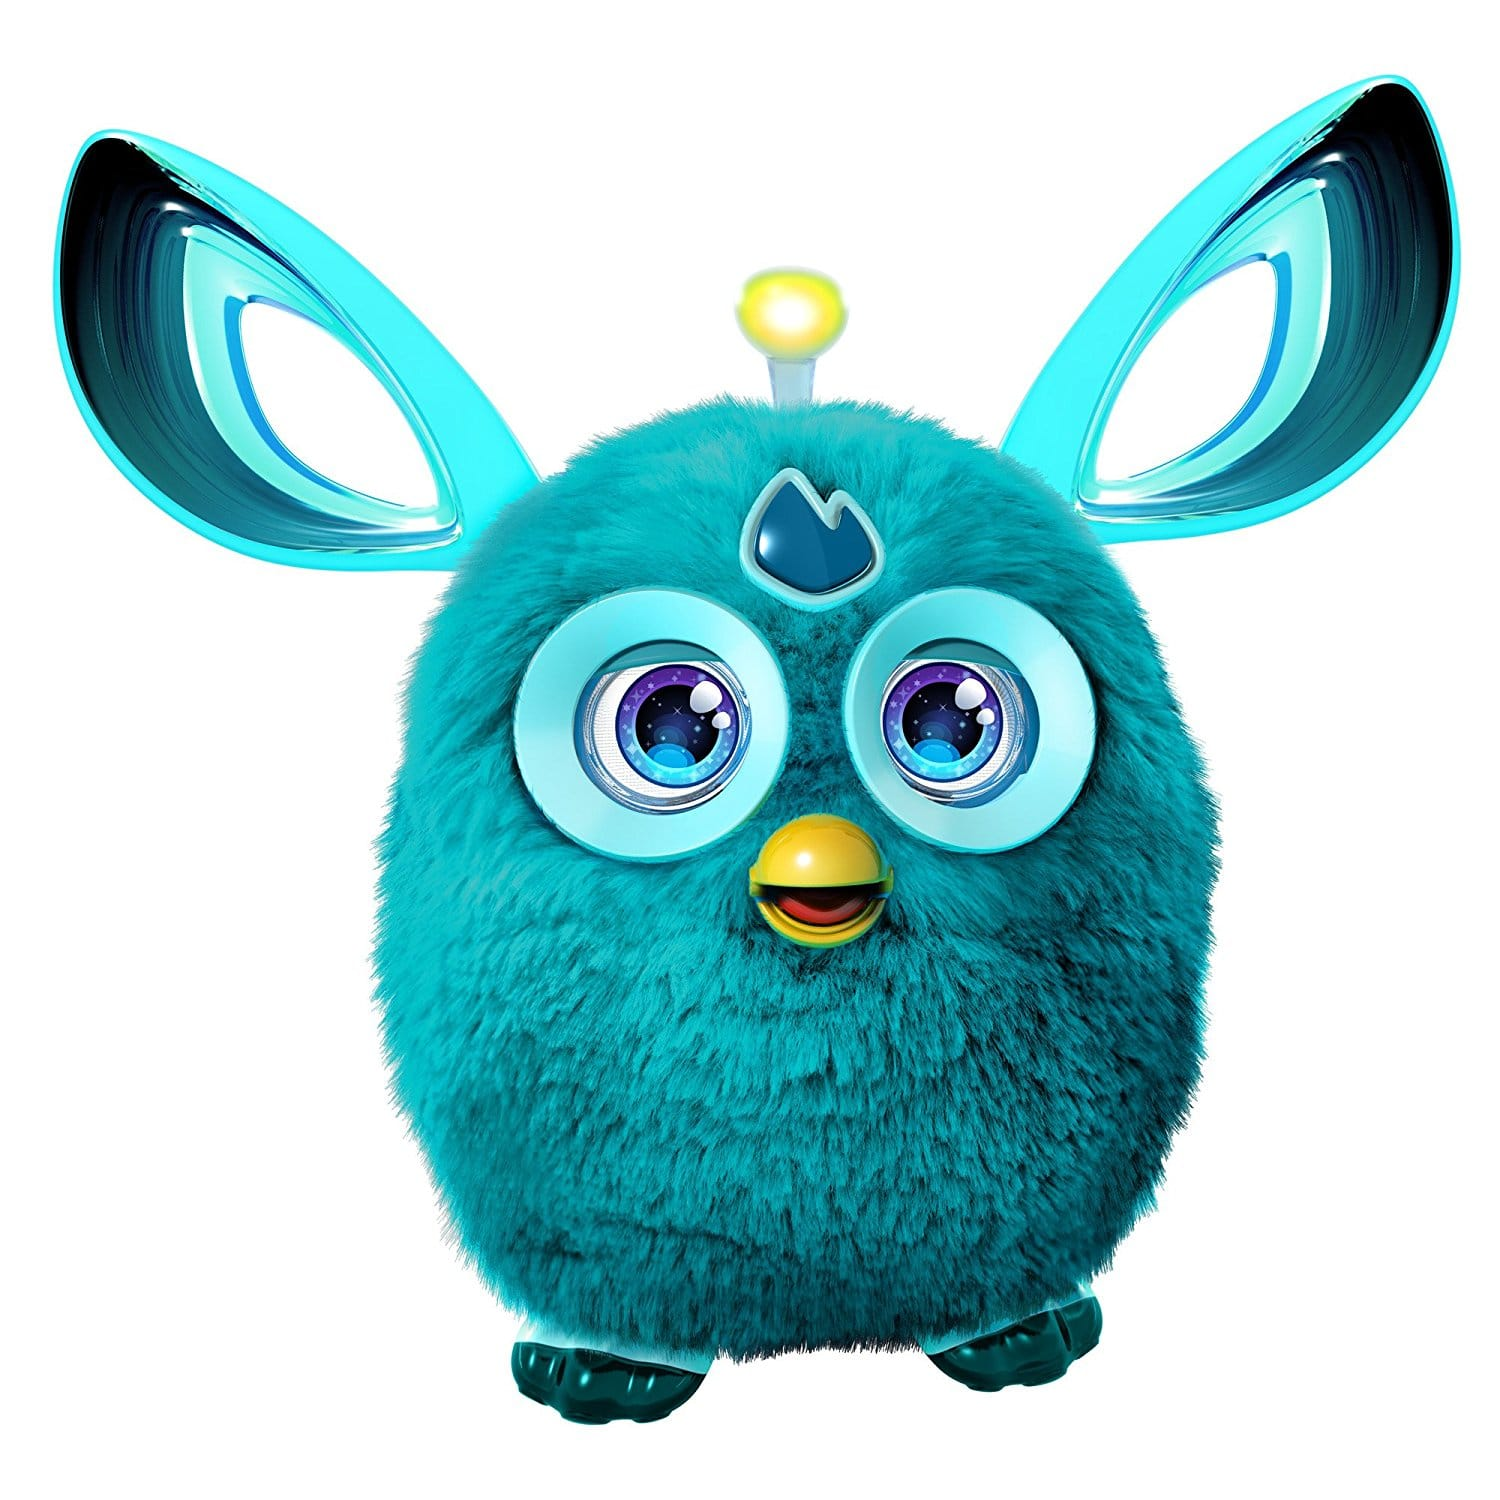 Hasbro Furby Connect Friend Toy Teal Slickdeals